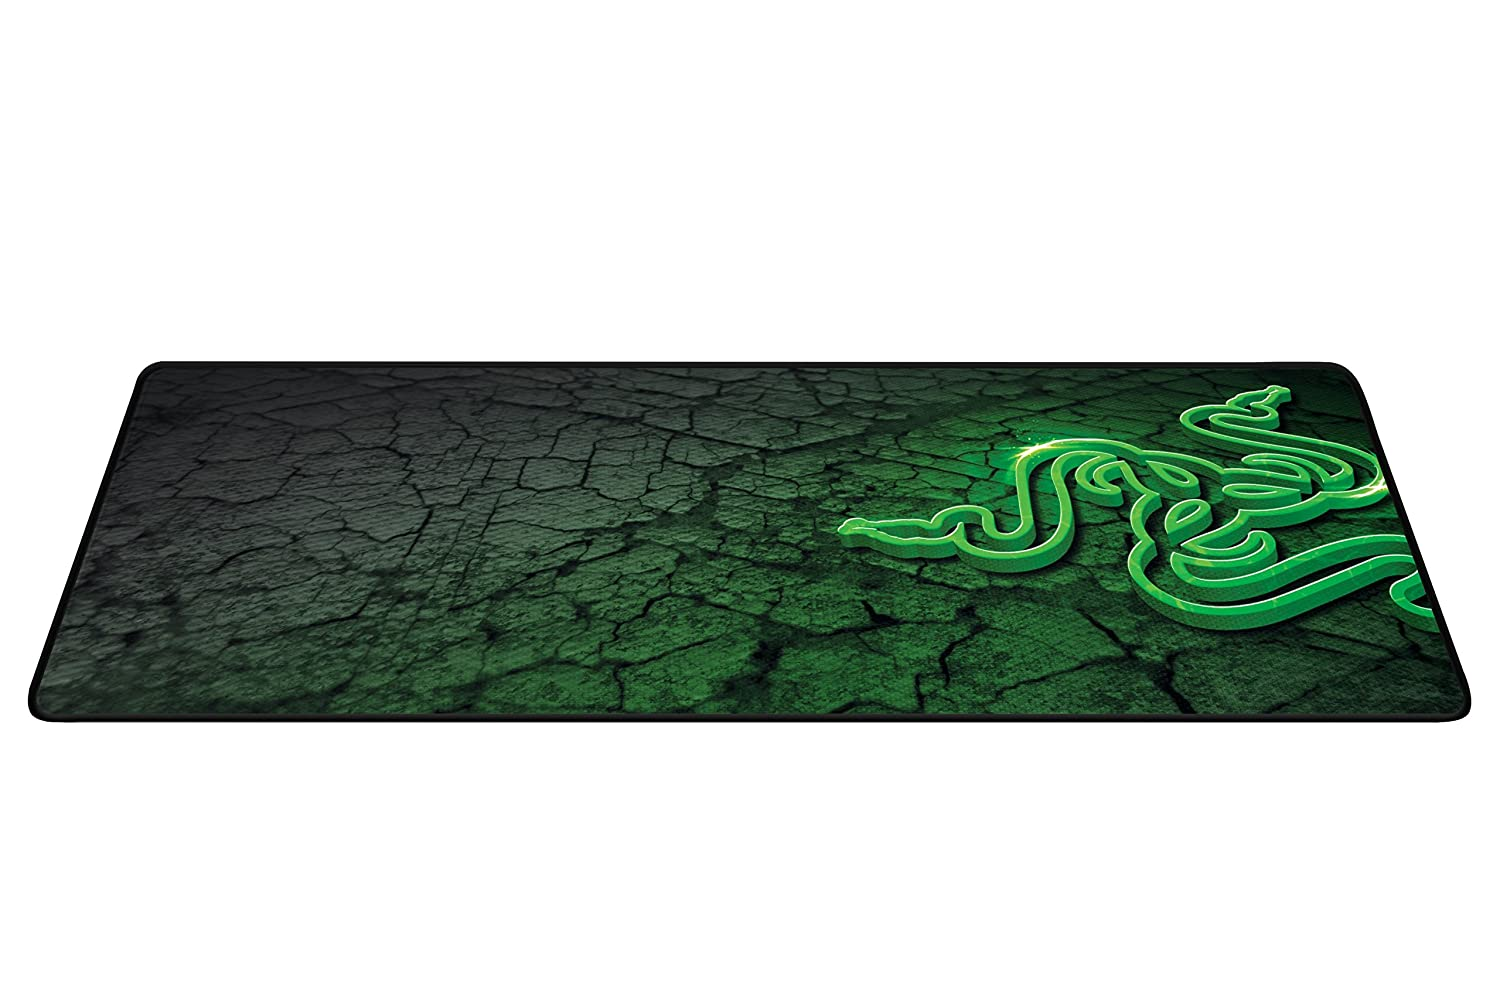 82ca157d63d Razer Goliathus Control (Extended) Gaming Mousepad - [Fissure]: Medium  Friction Mat - Anti-Slip Rubber Base - Portable Cloth Design - Anti-Fraying  Stitched ...